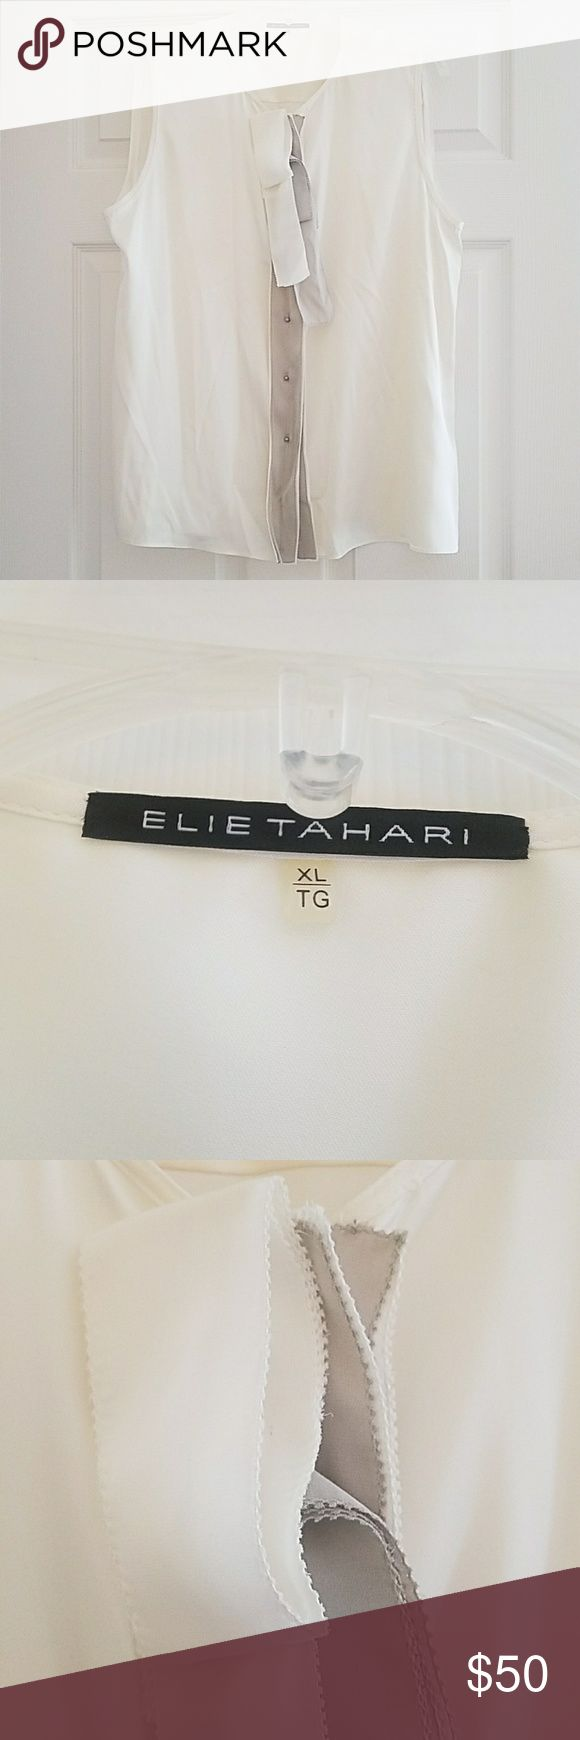 Elie Tahari Silk Cream Bow Blouse Classy Elie Tahari Silk Blouse. XL. Unique bow with light gray buttons. Very small snag on front, hardly noticeable. Good condition. Smoke free and pet free home. Great for work or a party! Elie Tahari Tops Blouses